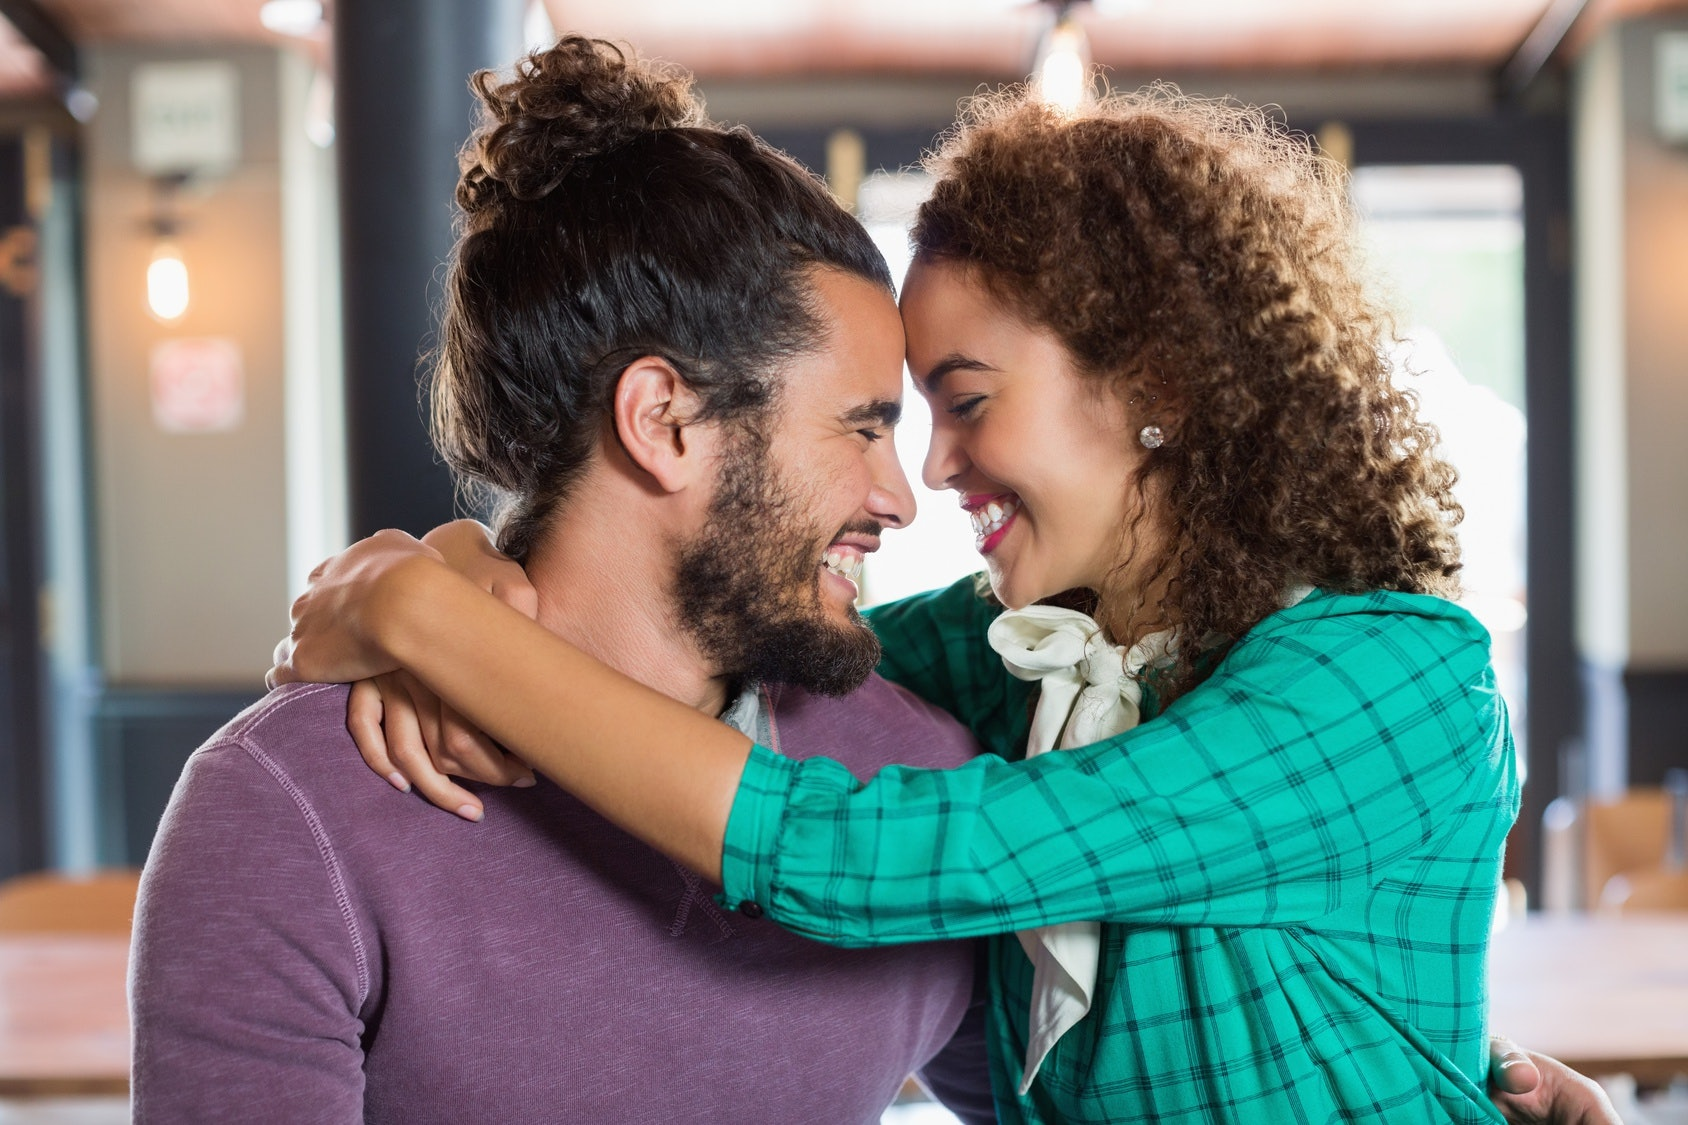 Top male bonding activities for dating